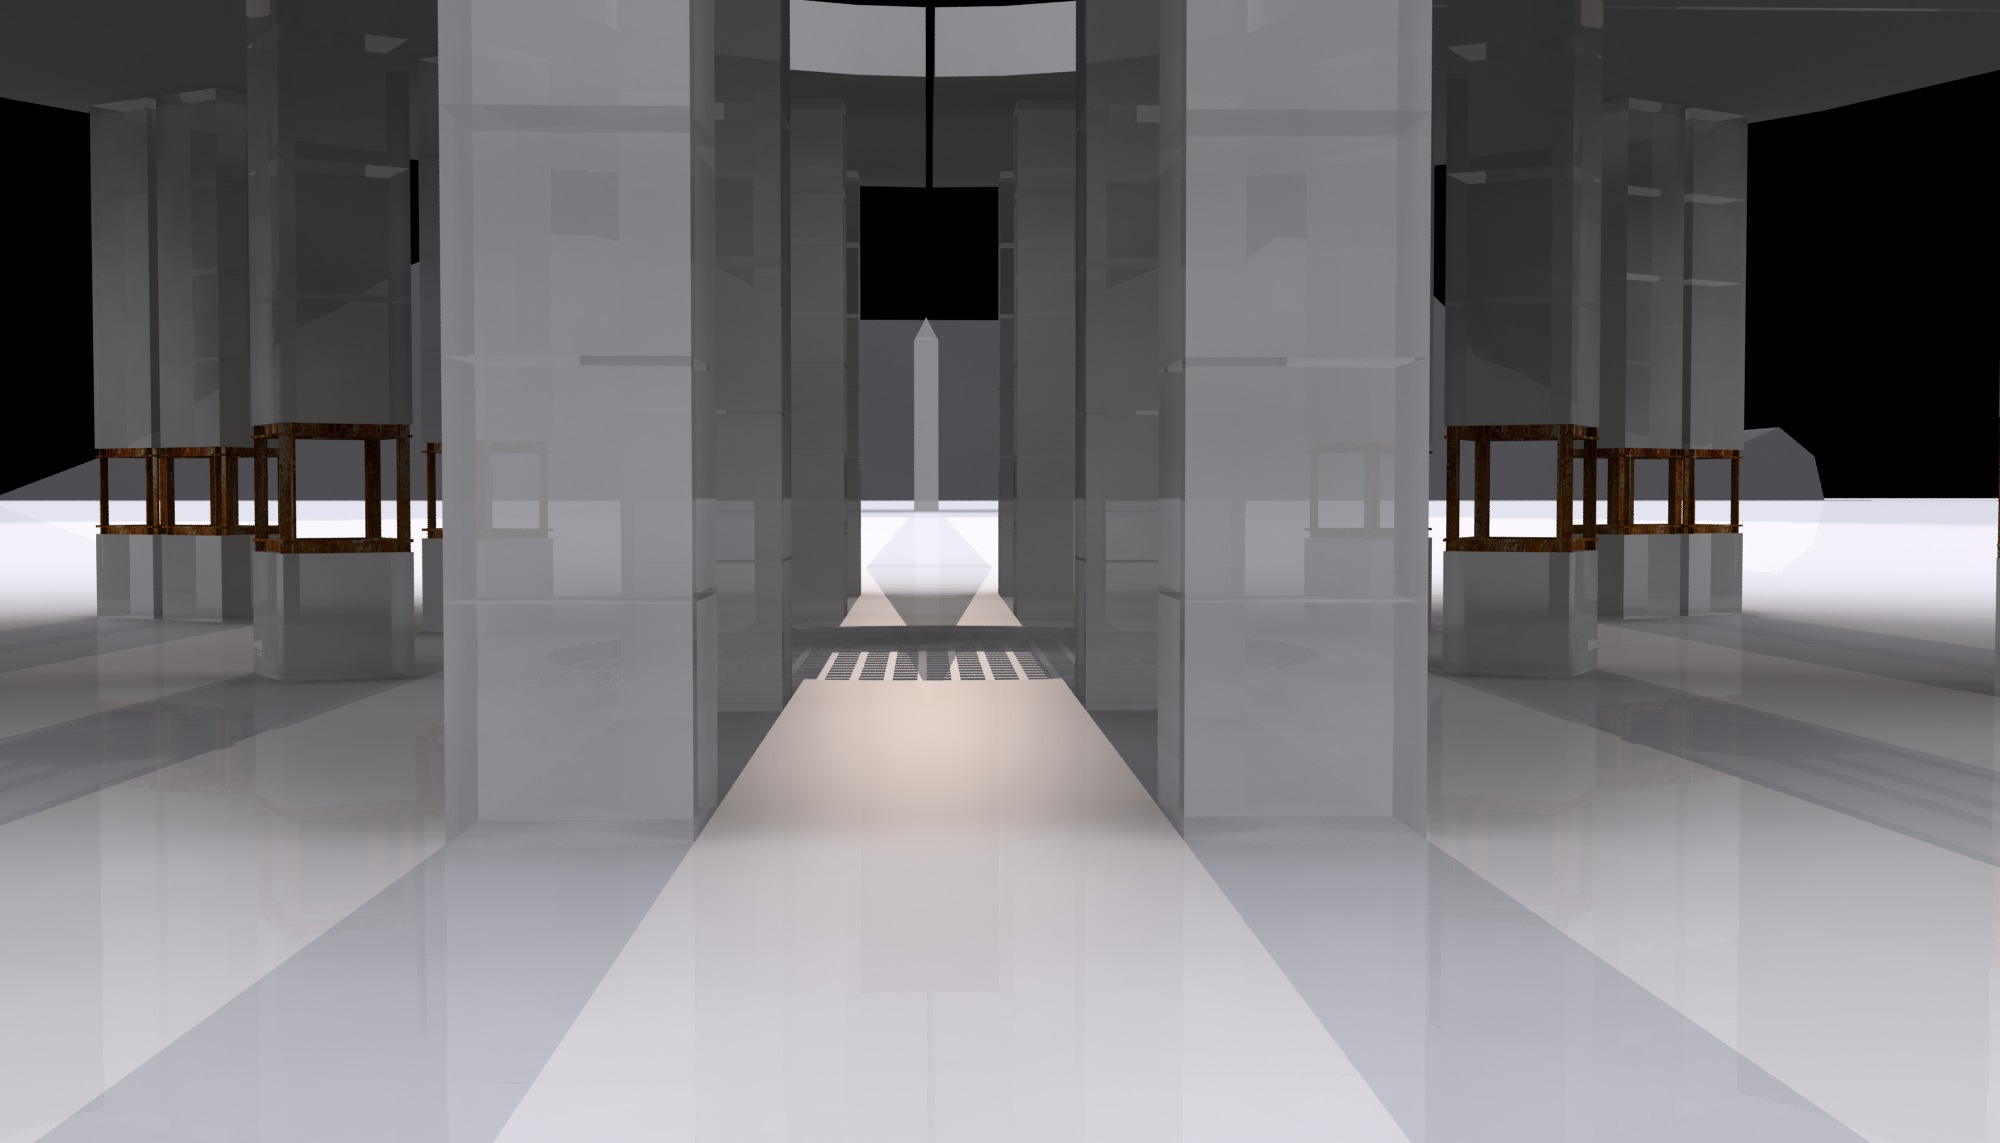 During the Equinox, the shadow cast by the top of the obelisk reaches the exact center of the spiritual chamber.